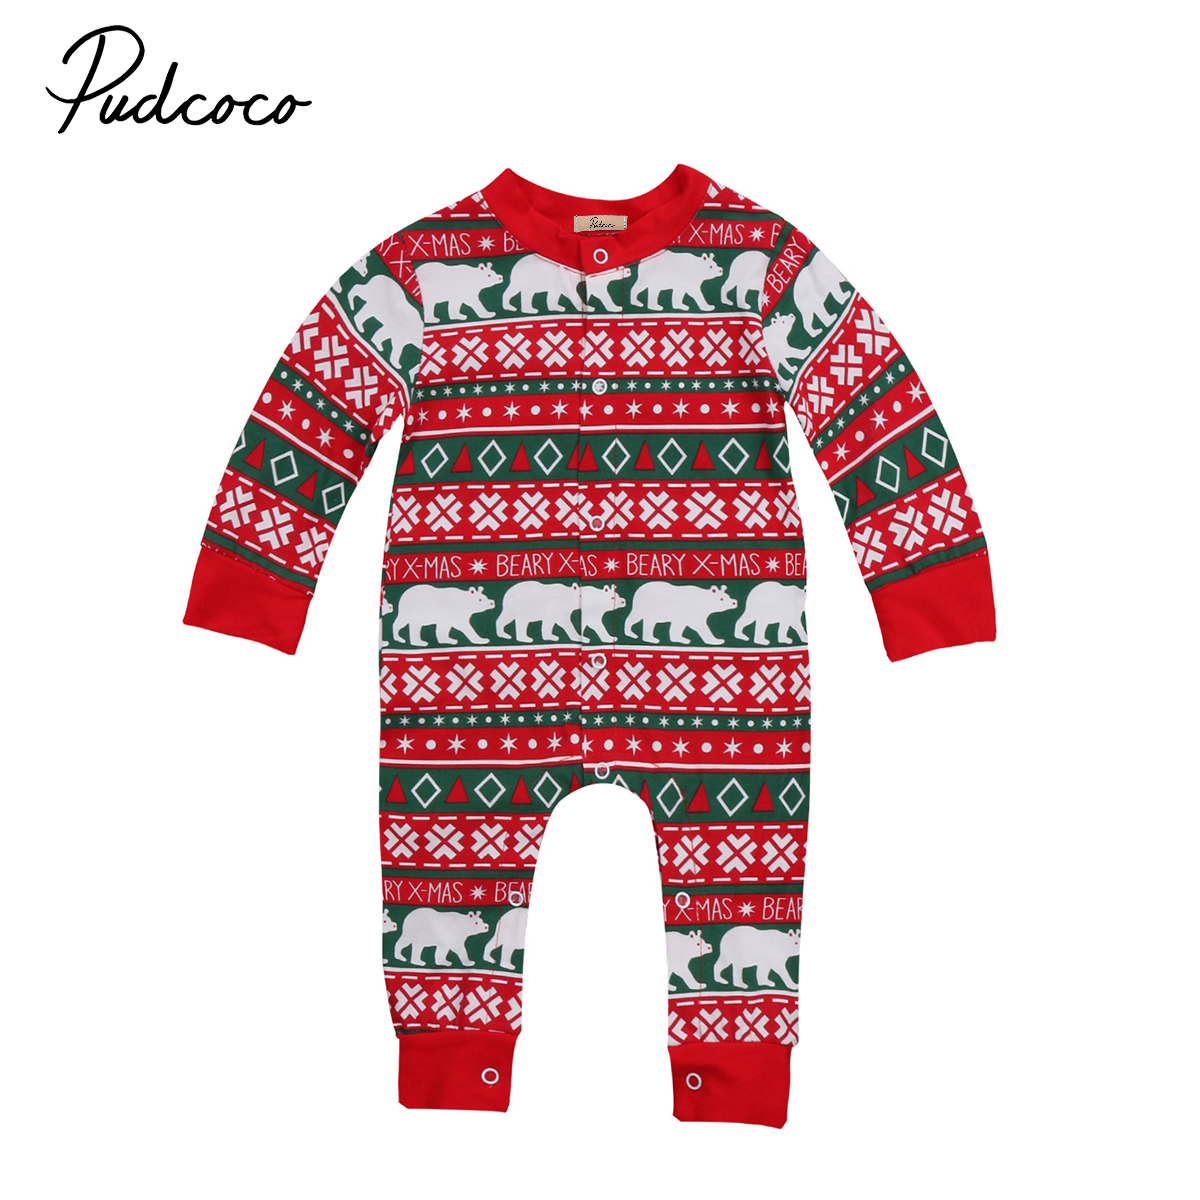 Autumn Winter Warm Newborn Baby Long Sleeve Rompers Christmas Romper Infant Boy Girl Jumpsuit Kids Clothes Outfits Age 0-24M infant toddler baby kids boys girls pocket jumpsuit long sleeve rompers hats kids warm outfits set 0 24m